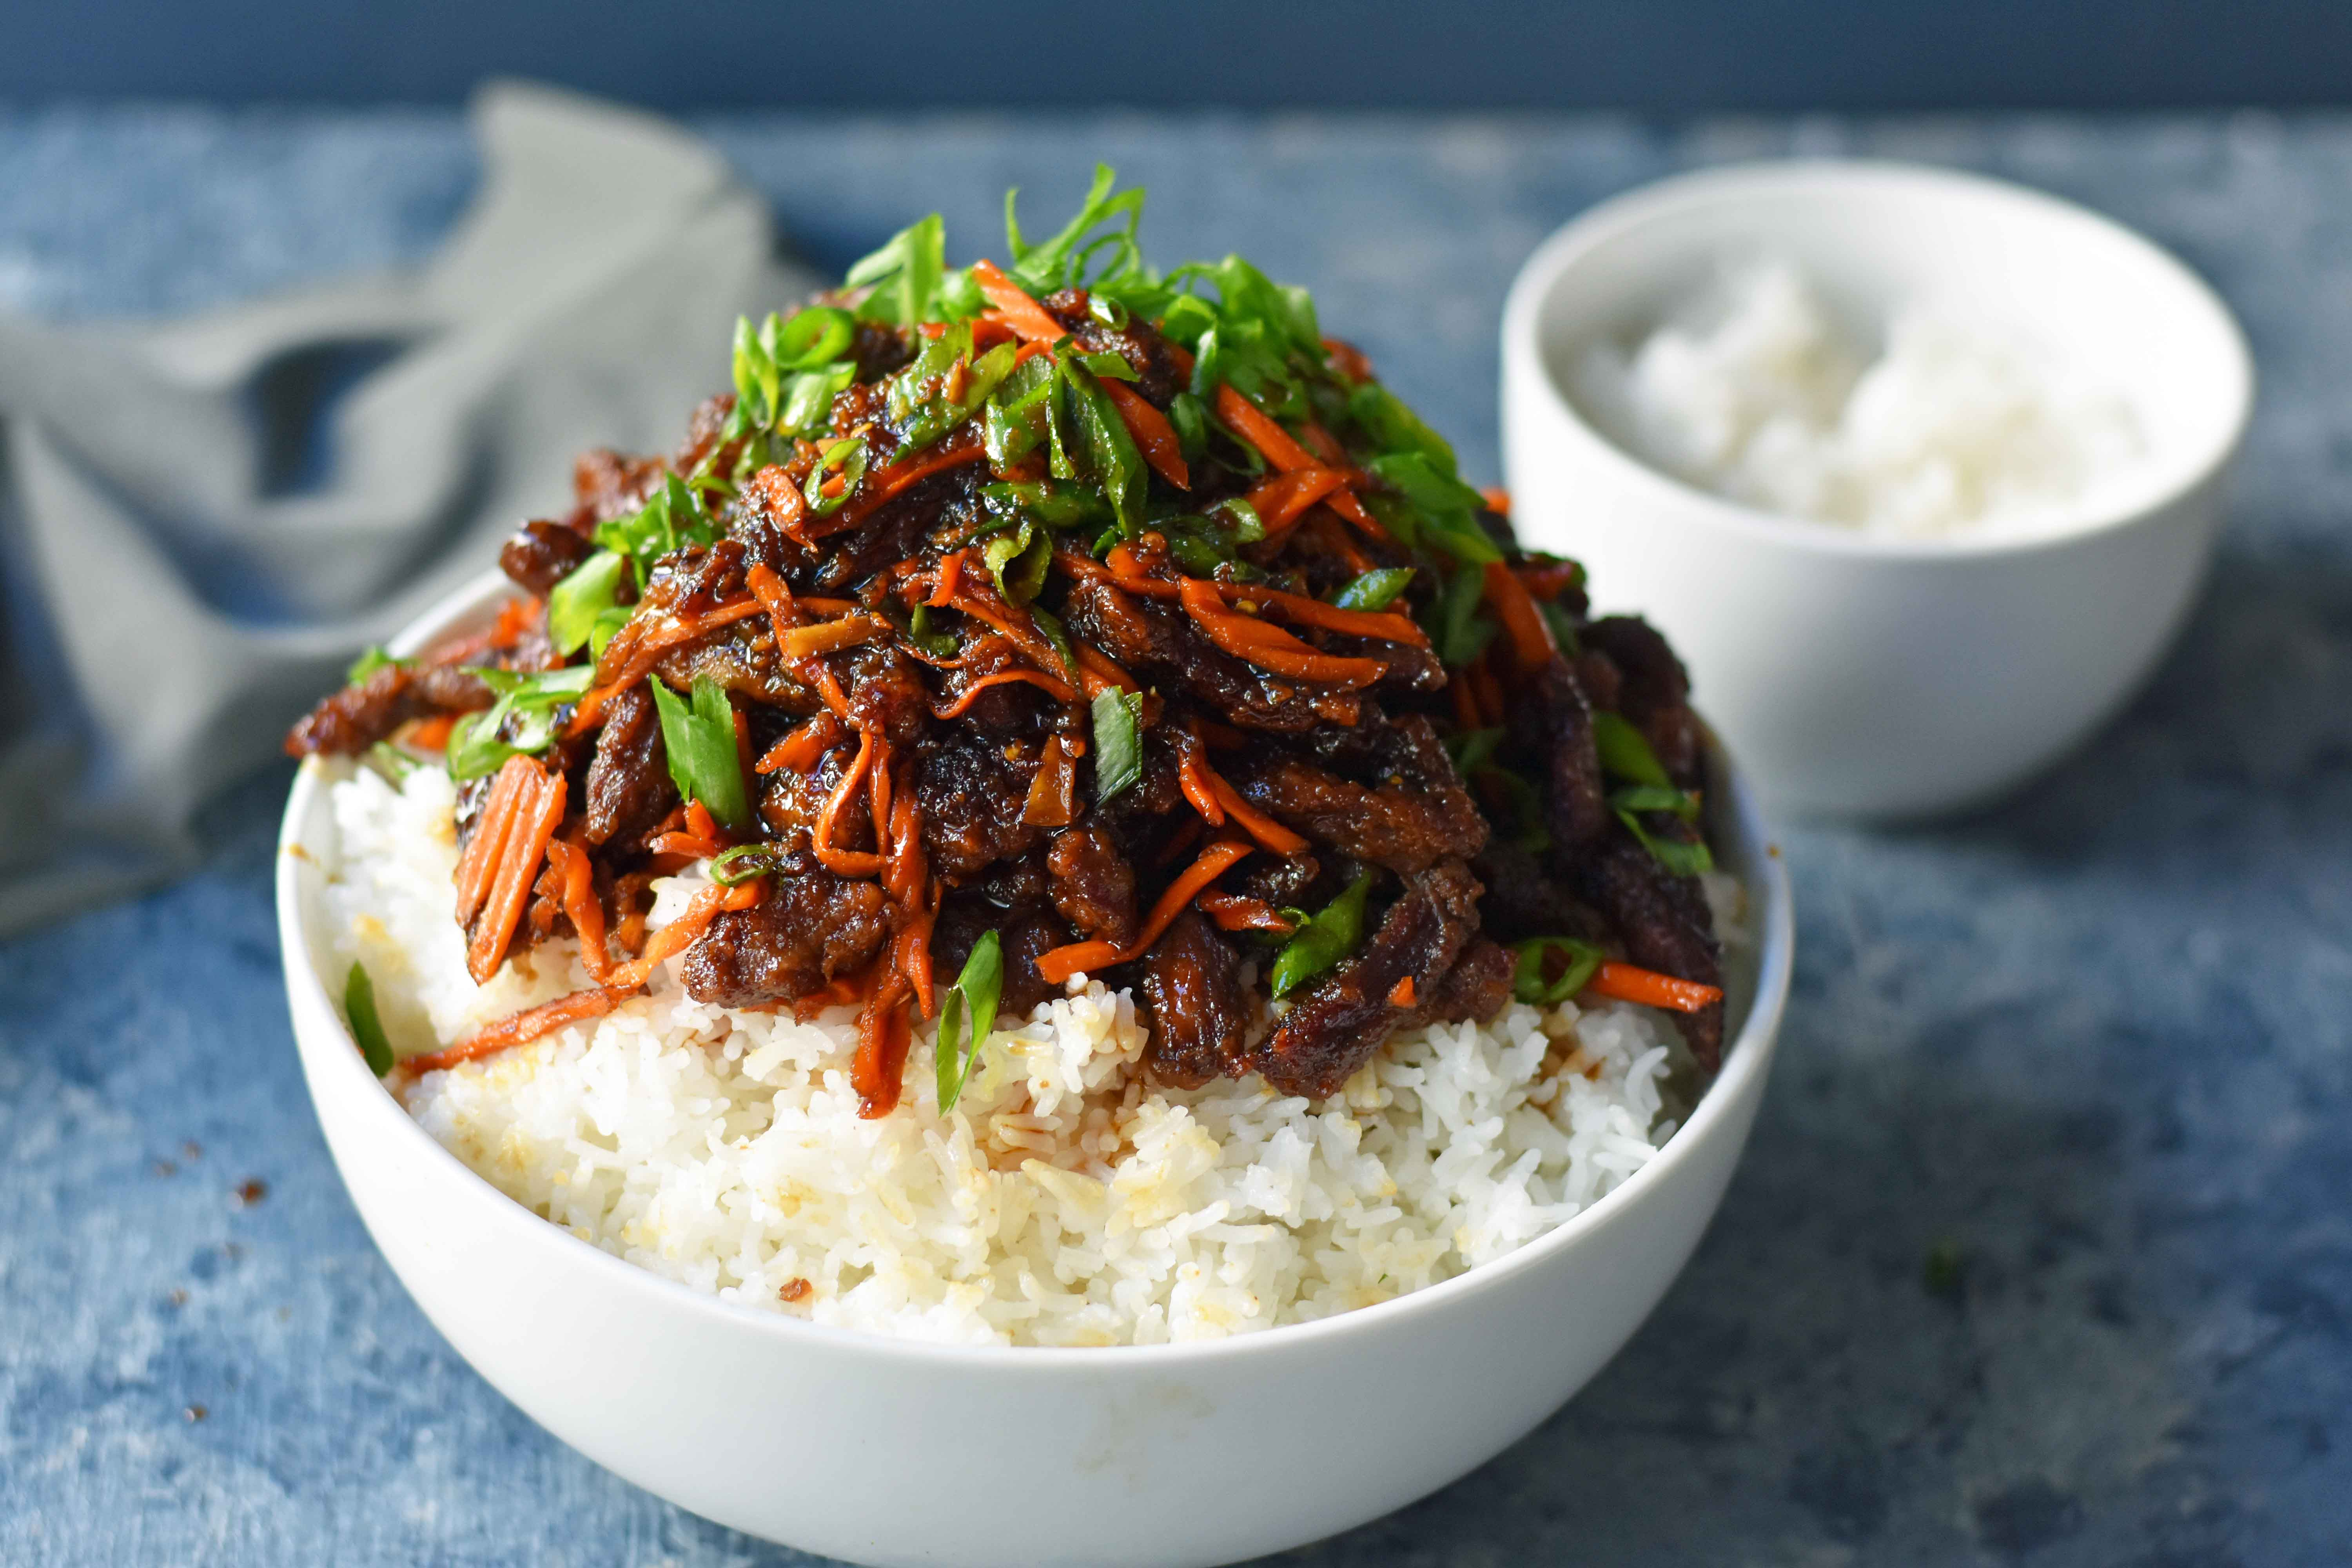 Mongolian Beef recipe. A P.F. Chang's Monglian Beef copycat recipe. Crispy beef in a sweet, salty, spicy sauce on a bed of rice. A popular asian dish. www.modernhoney.com